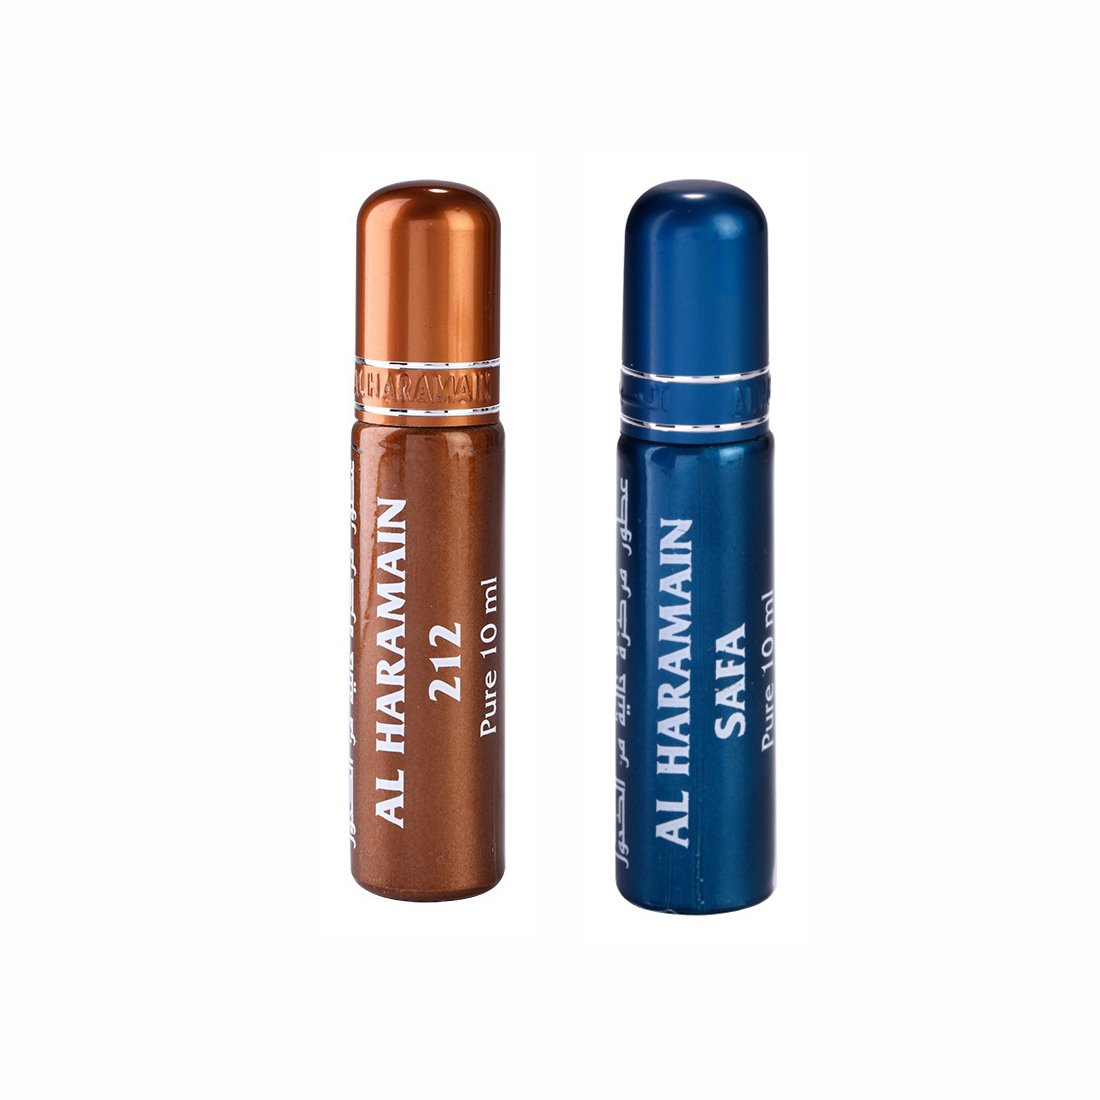 Al Haramain 212 & Safa Roll On Attar Pack of 2 x 10ml